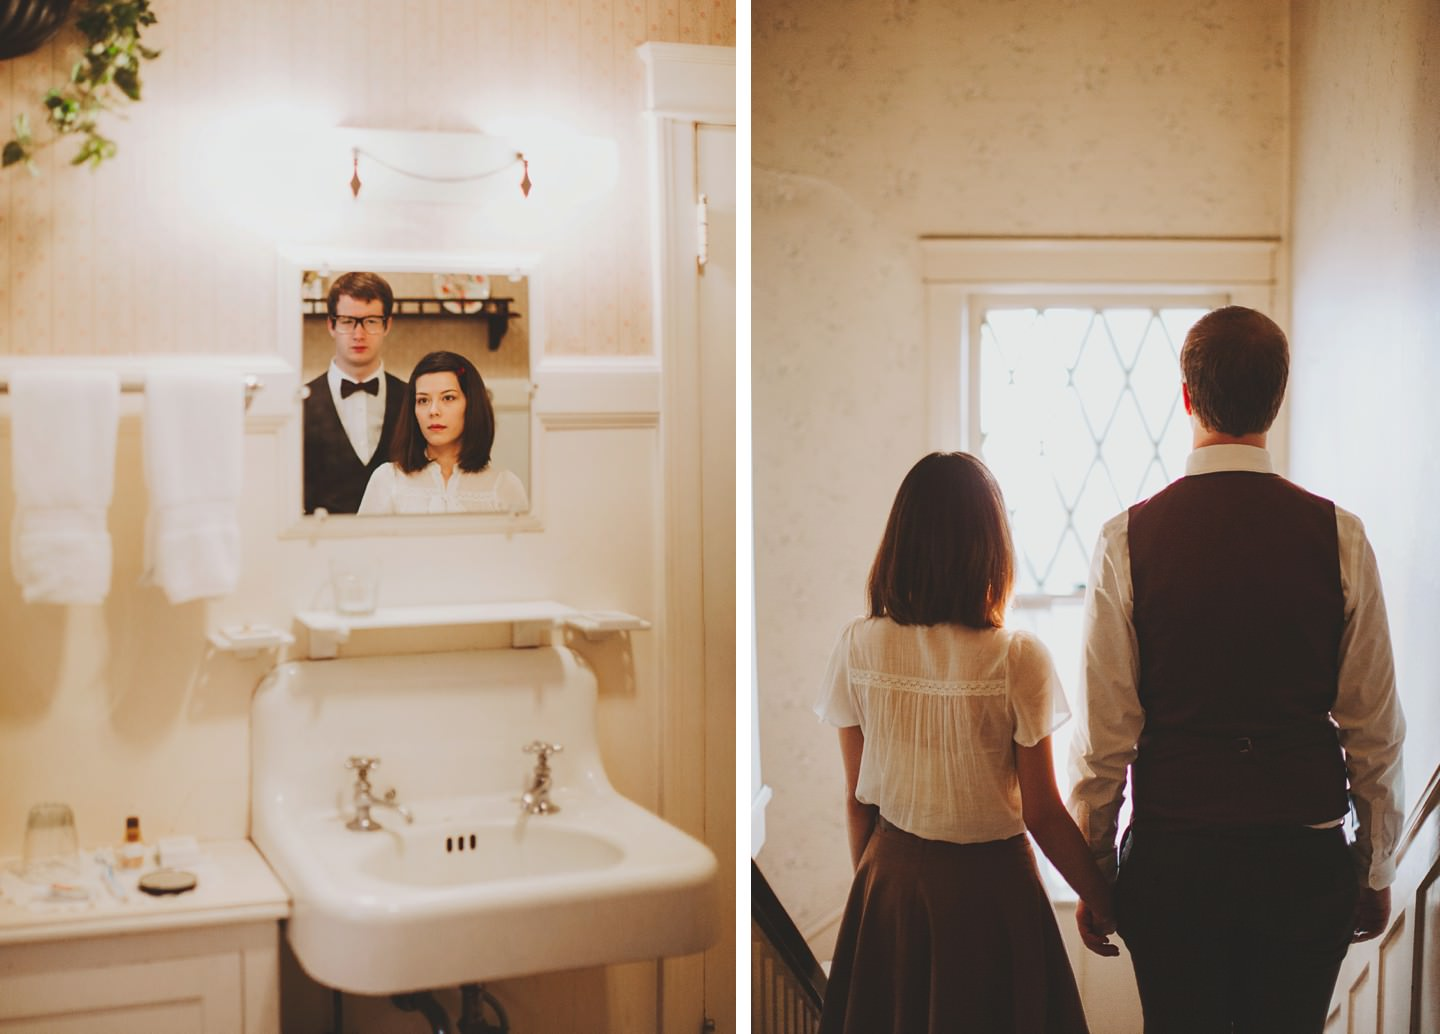 Wes anderson inspired engagement pictures nessa k for Bathroom photoshoots